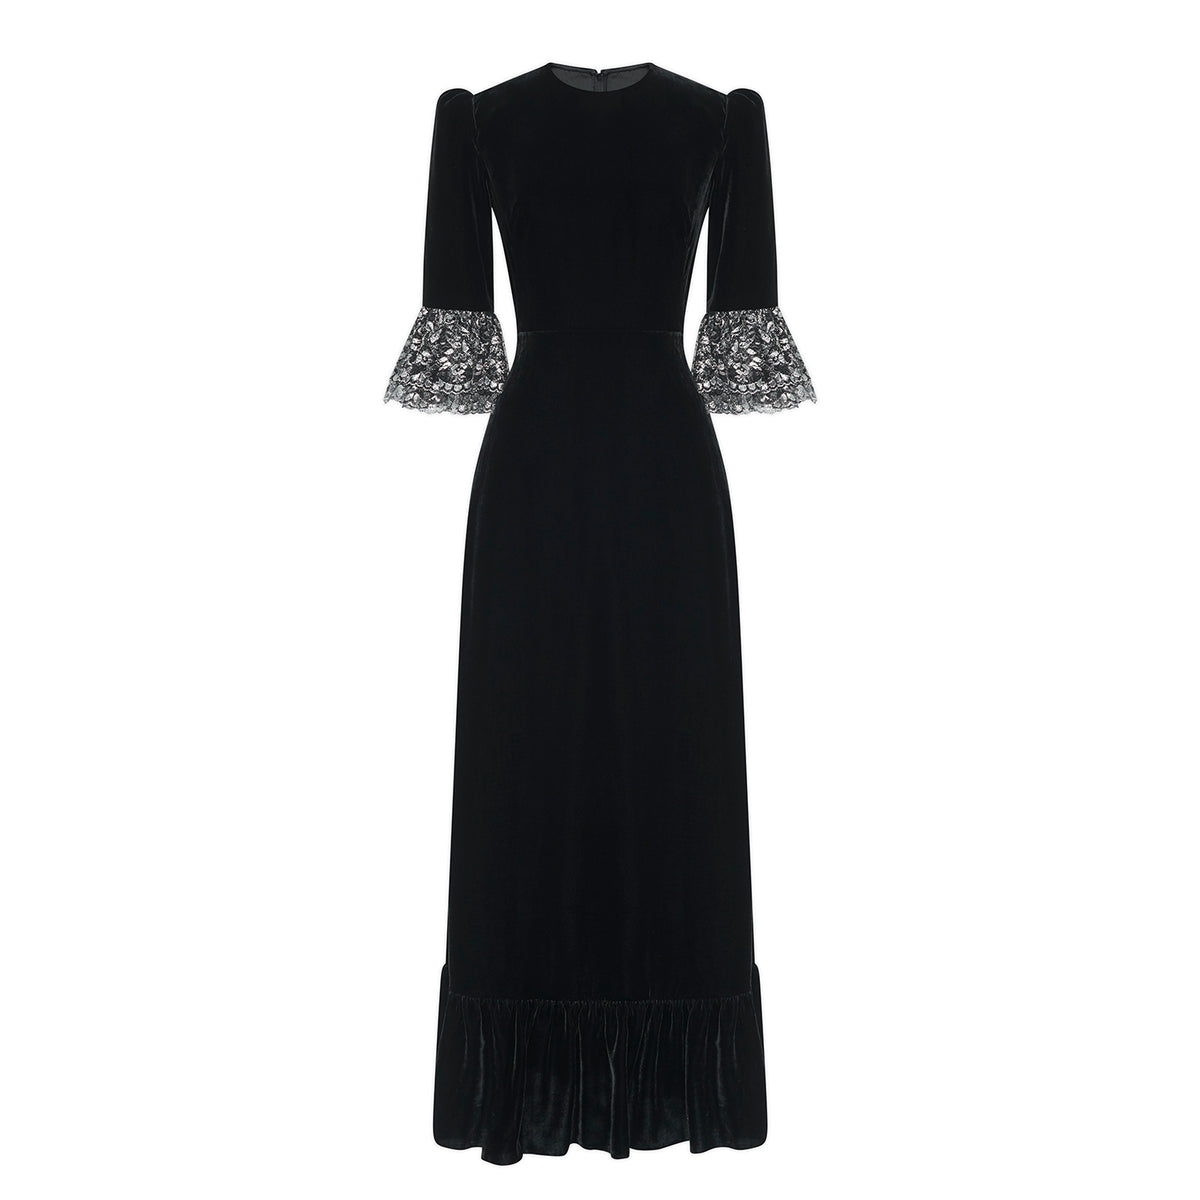 THE VELVET PRISCILLA DRESS